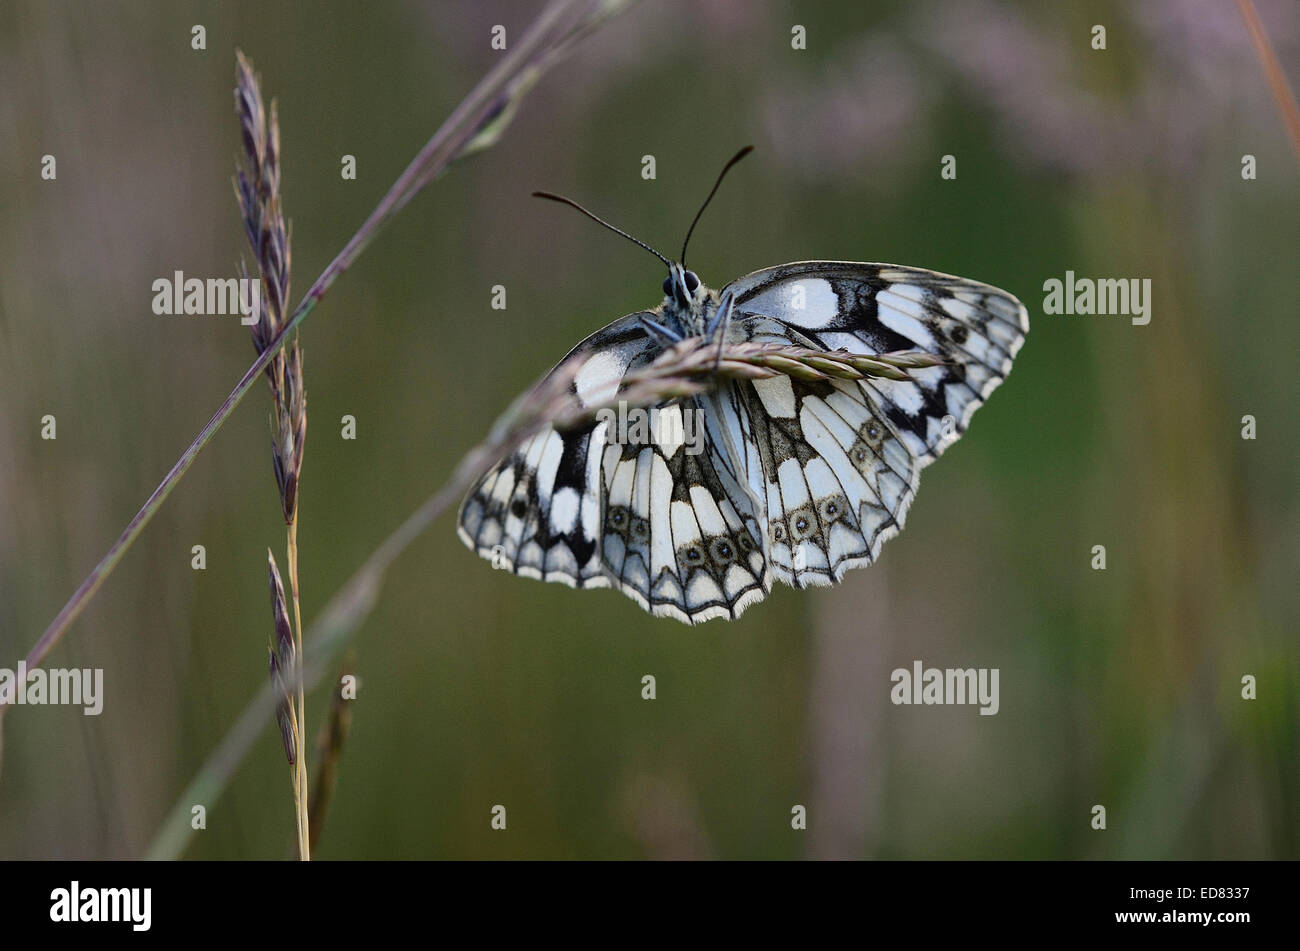 Marbled white butterfly at rest UK - Stock Image